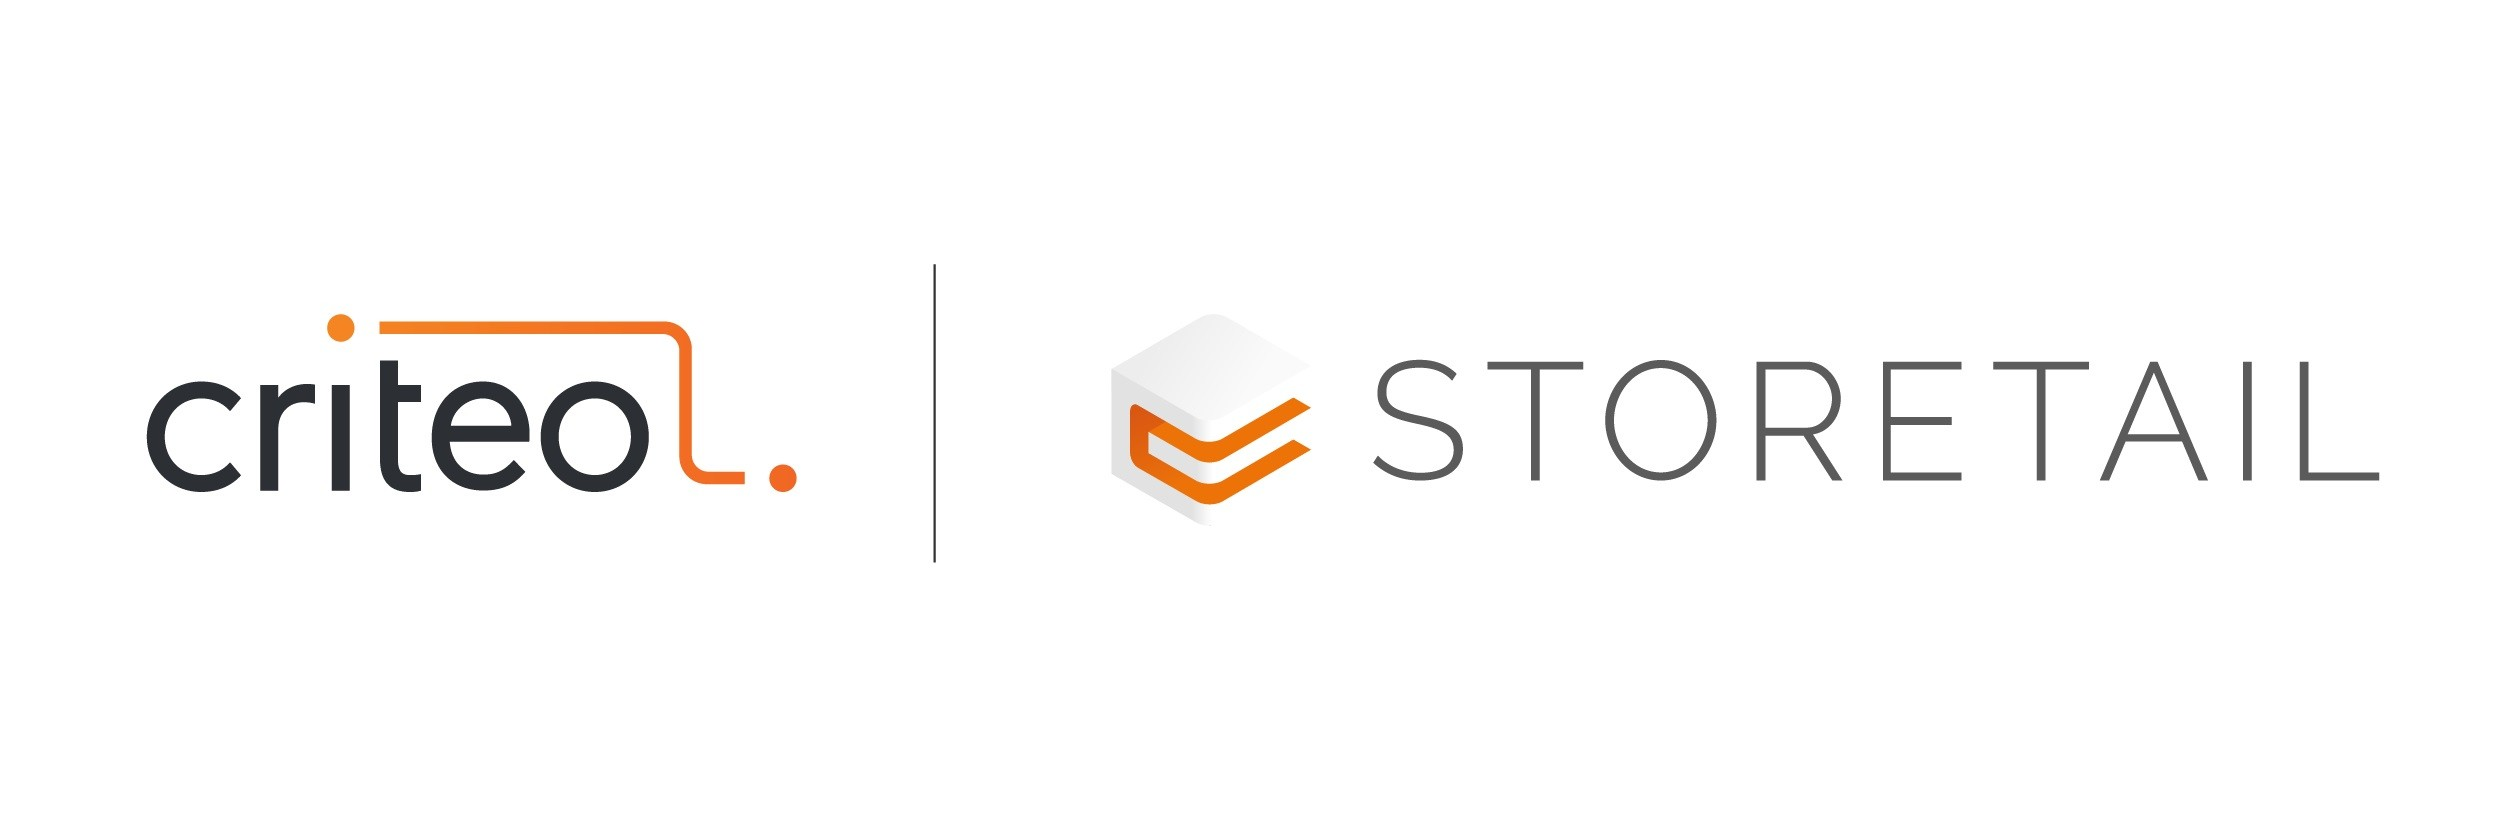 STORETAIL (Acquired by Criteo in 2018).